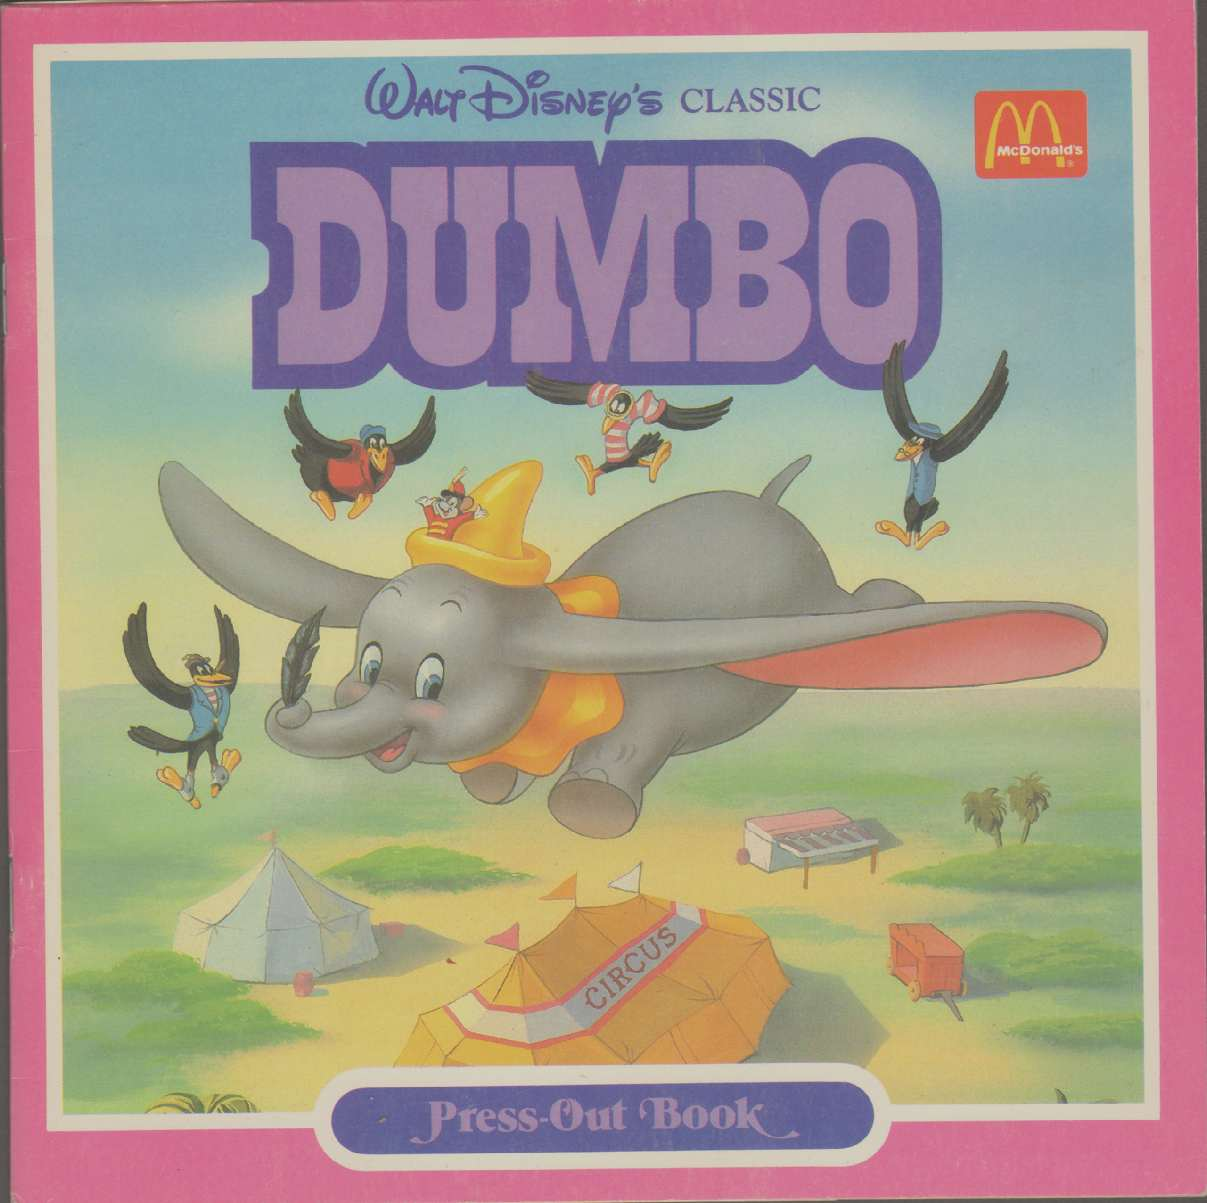 Image for WALT DISNEY'S CLASSIC DUMBO PRESS-OUT BOOK One in a Series from McDonald's